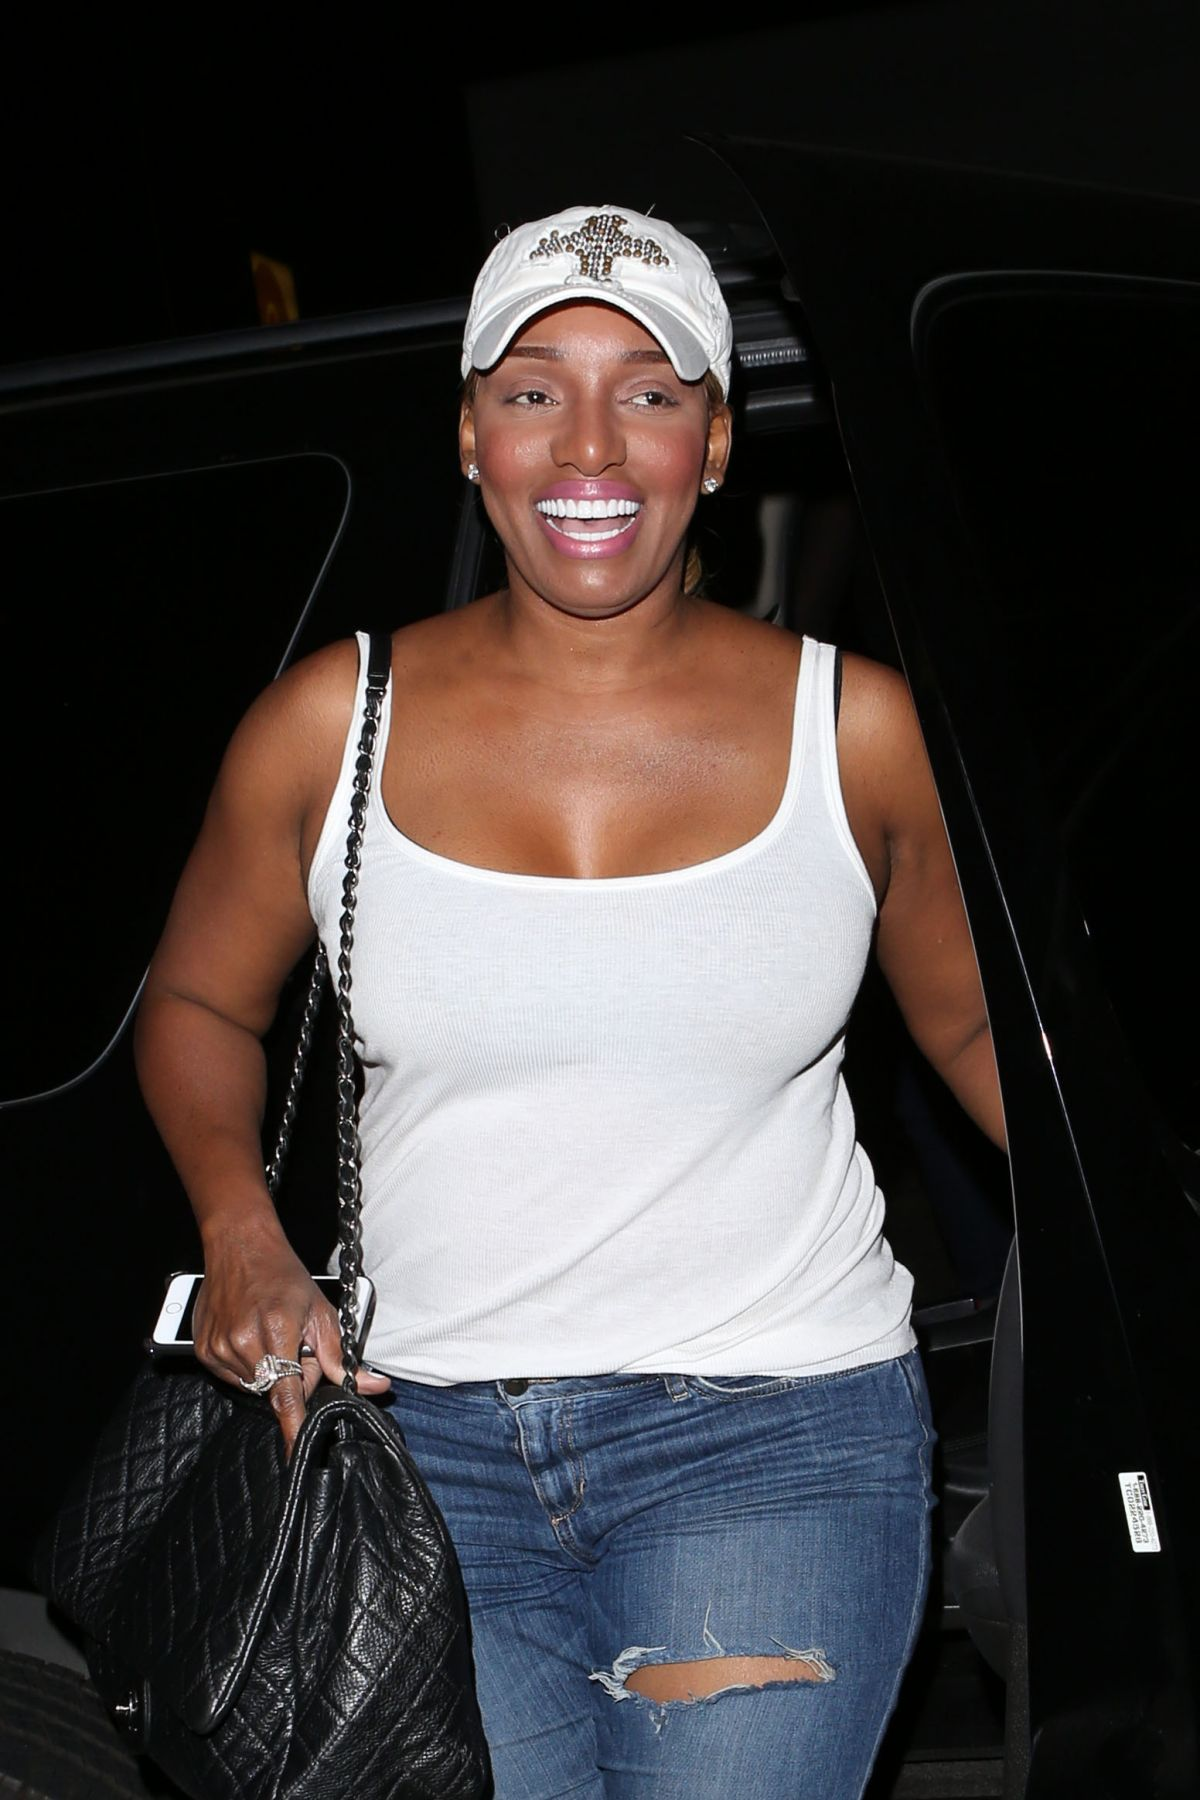 NENE LEAKES at Nice Guy in West Hollywood 05/18/2016